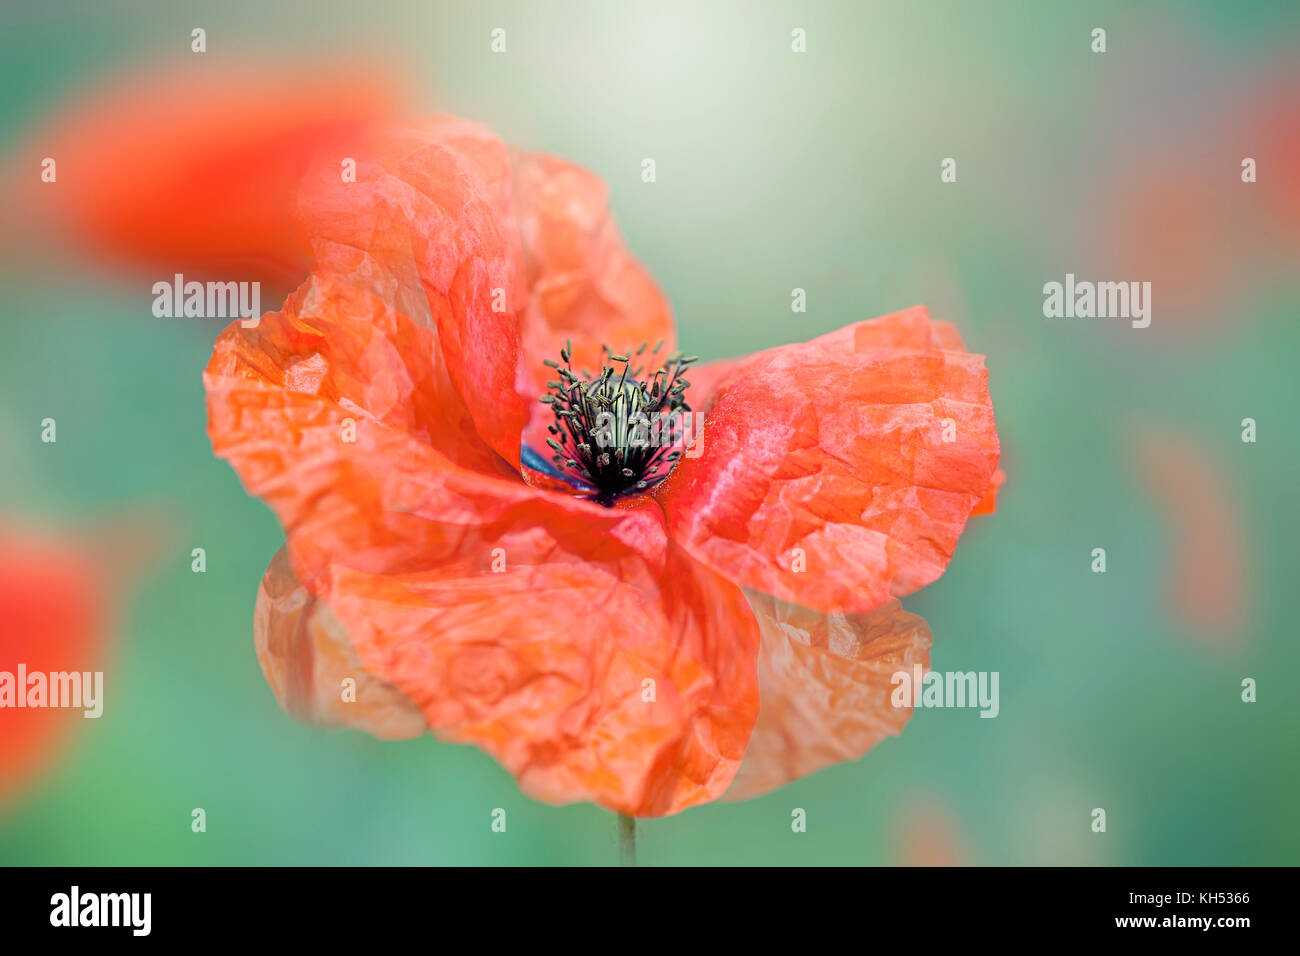 Close up image of a single red poppy flower a symbol of close up image of a single red poppy flower a symbol of remembrance on armastice day buycottarizona